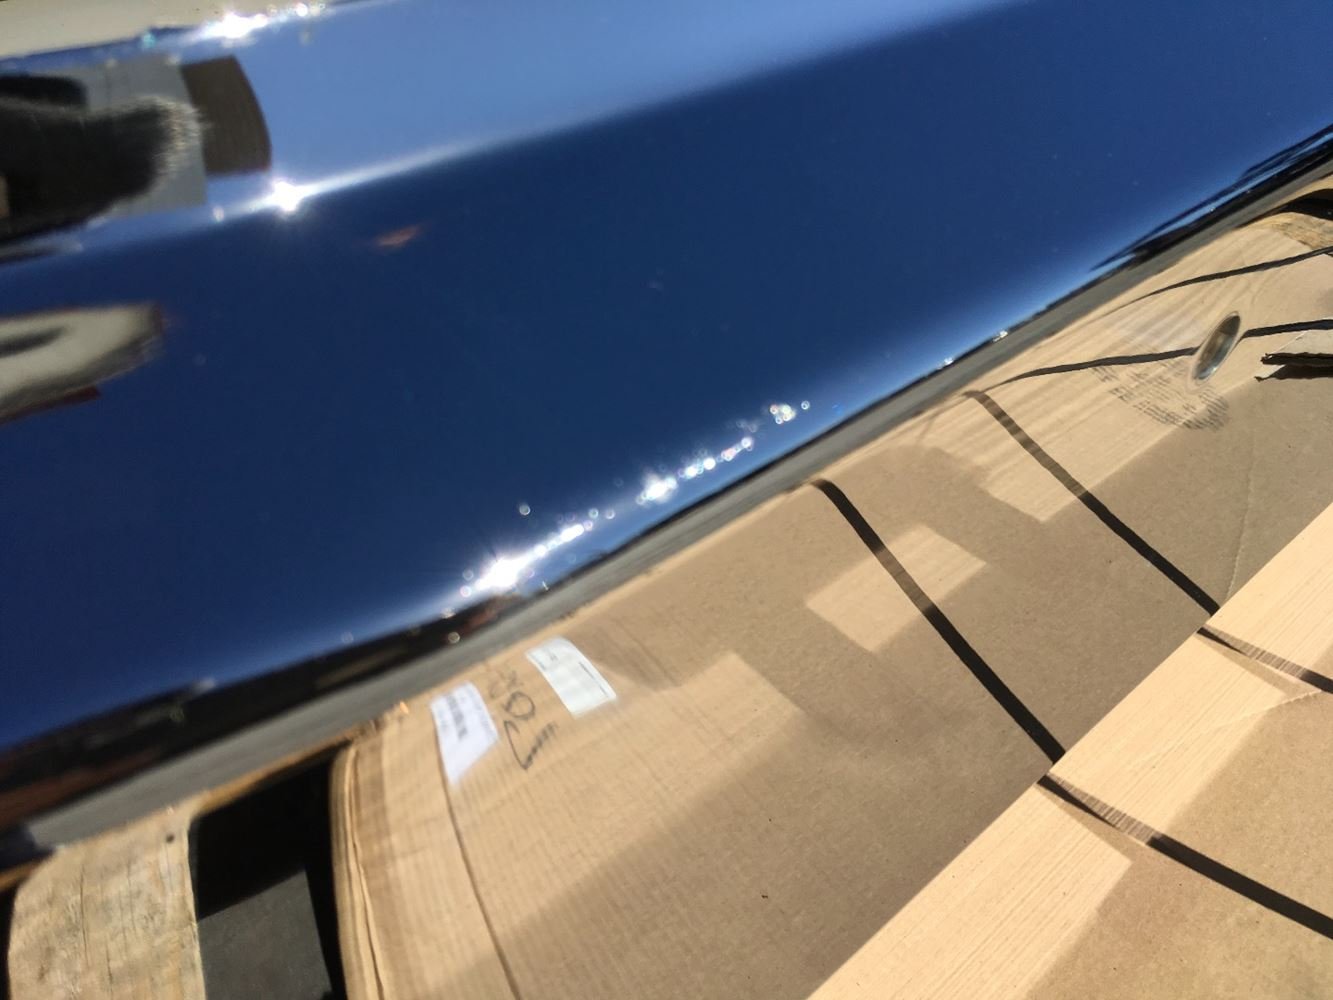 Chrome Bumpers For Fld 120 : Freightliner fld stock bumpers tpi